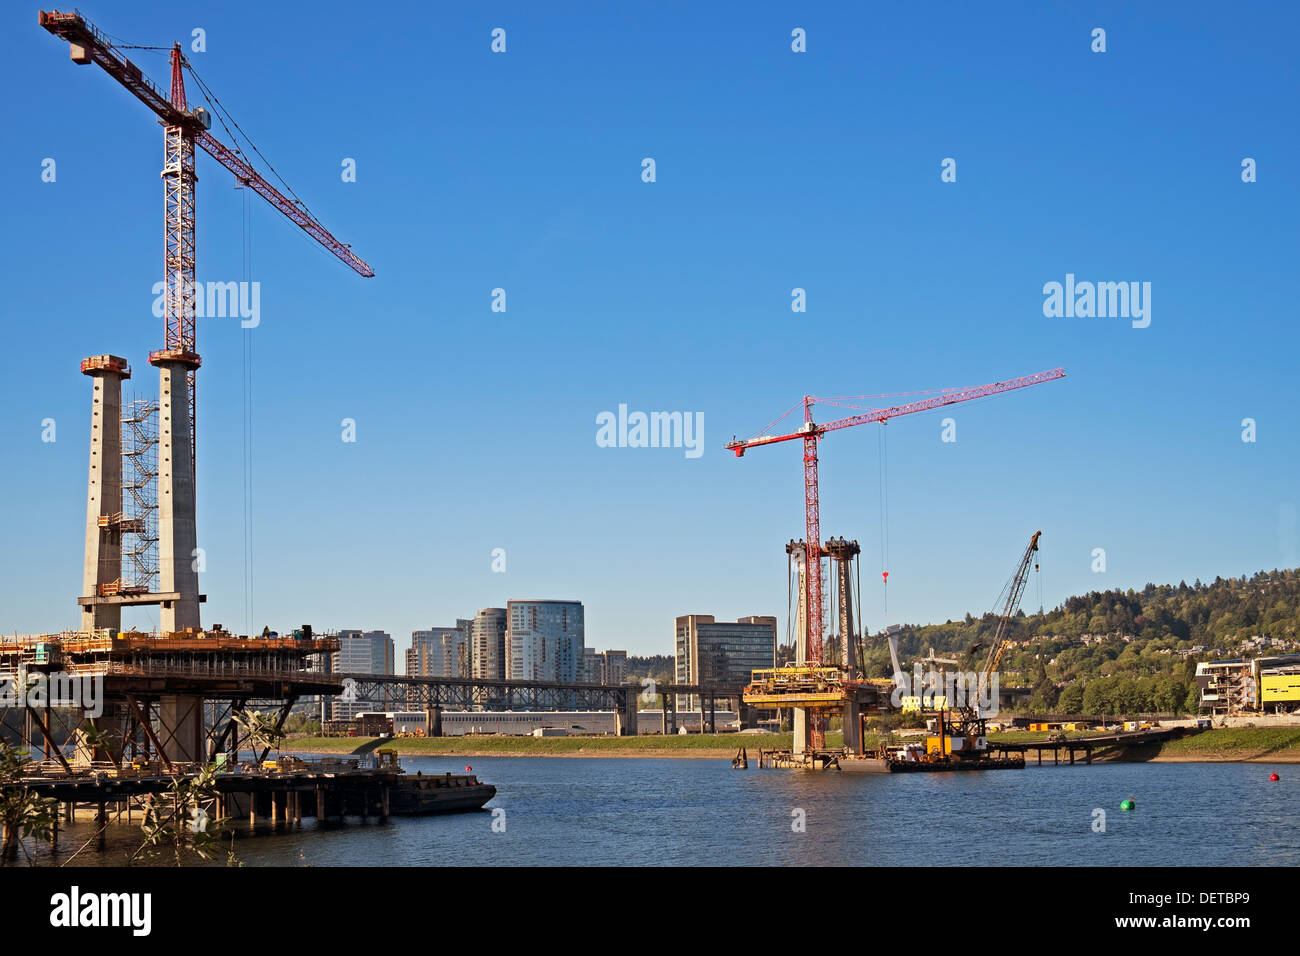 rail crane stockfotos rail crane bilder alamy. Black Bedroom Furniture Sets. Home Design Ideas